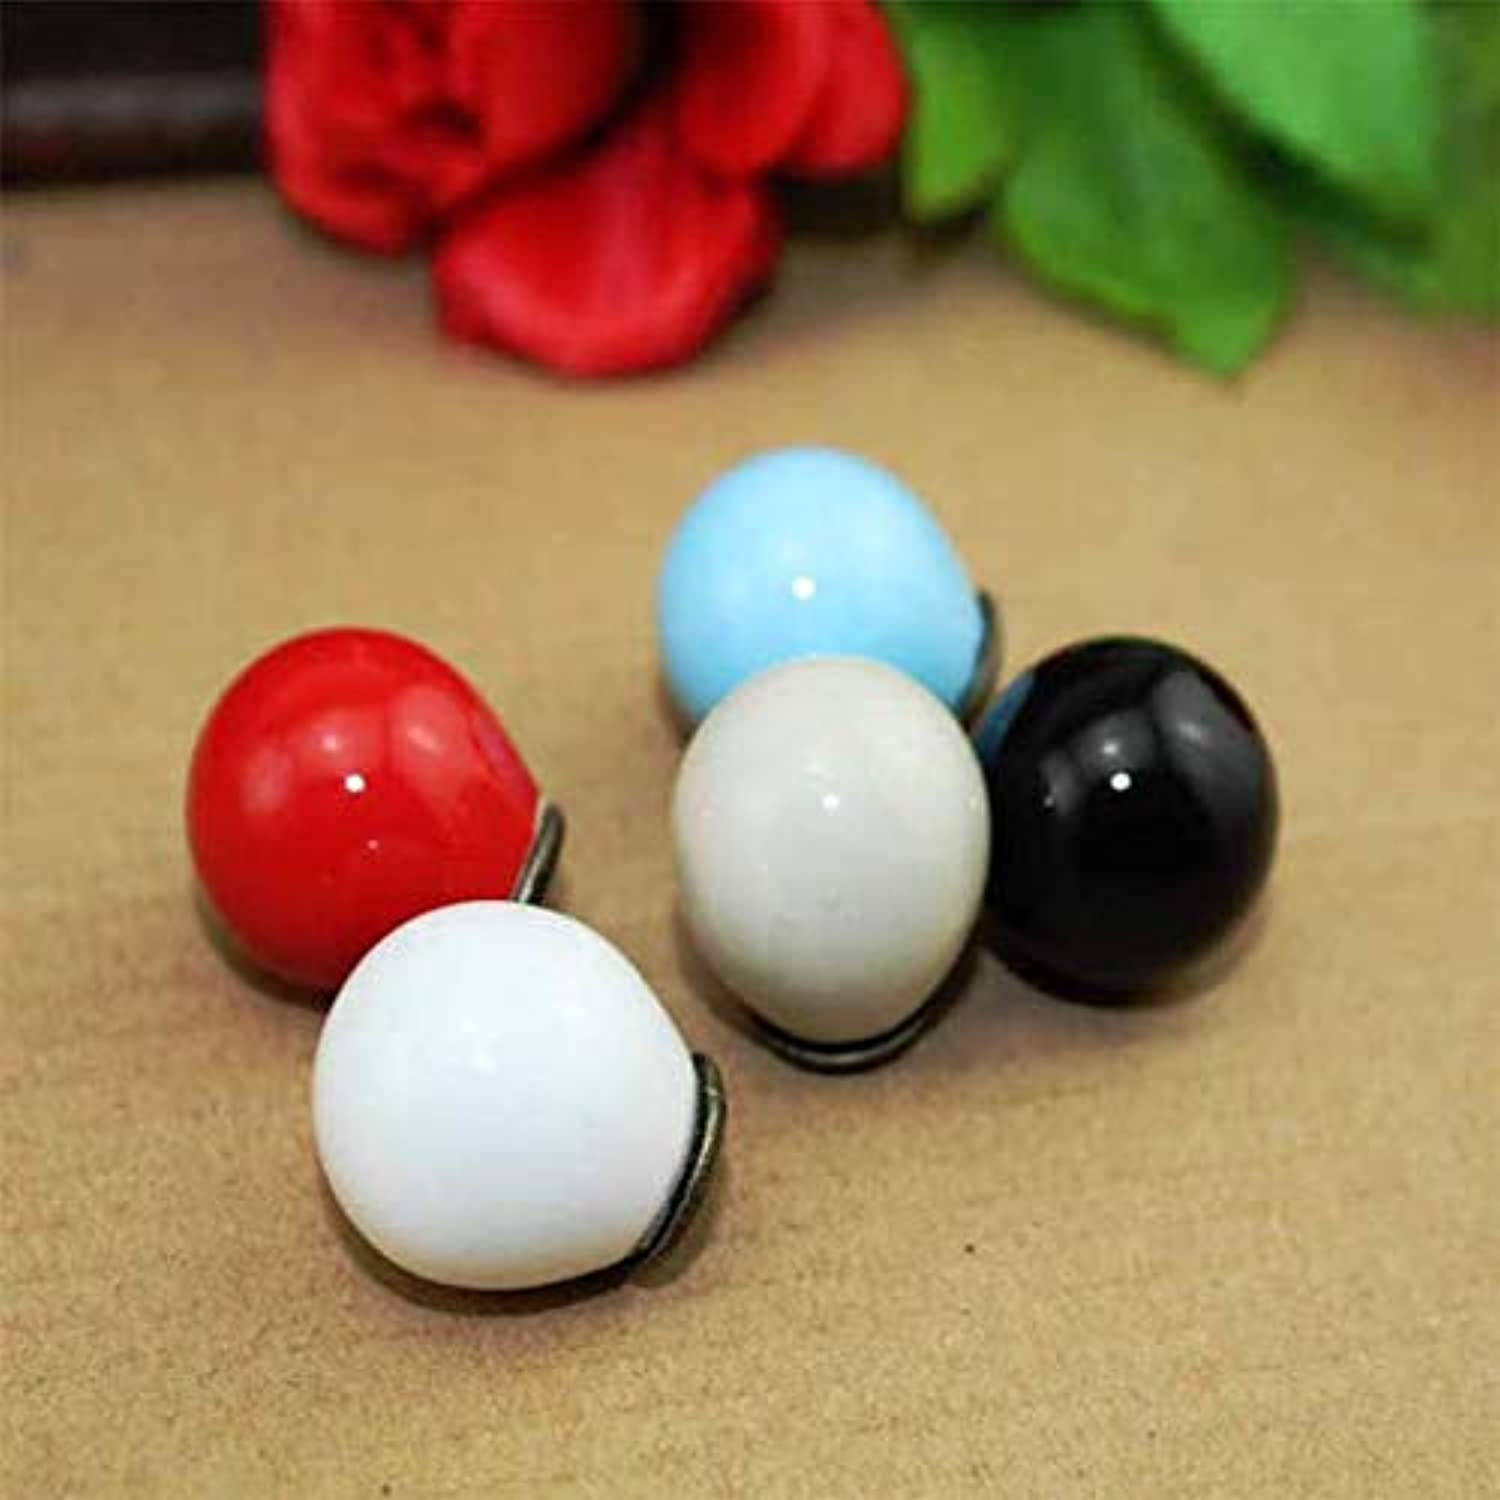 Value-5-Star - Dia 21mm Ceramic Ball Knobs Single Hole Round Furniture Handles Wardrobe and Cupboard knobs Drawer Dresser knobs Cabinet pulls